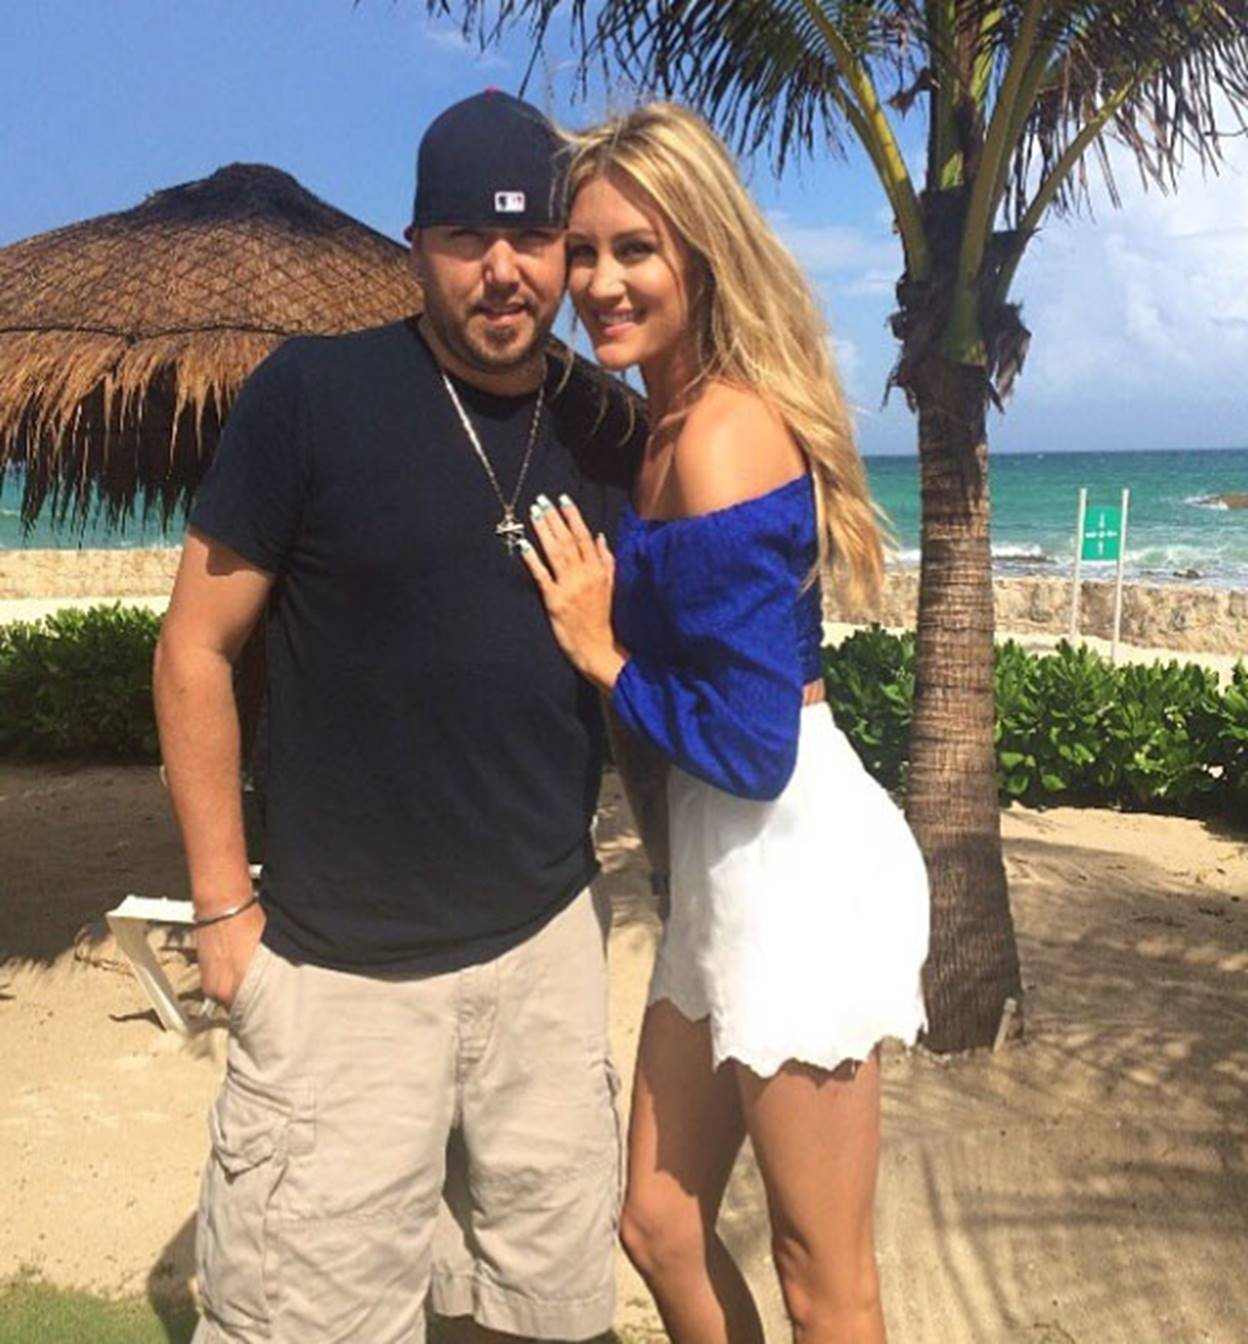 Jason Aldean and wife Brittany Kerr